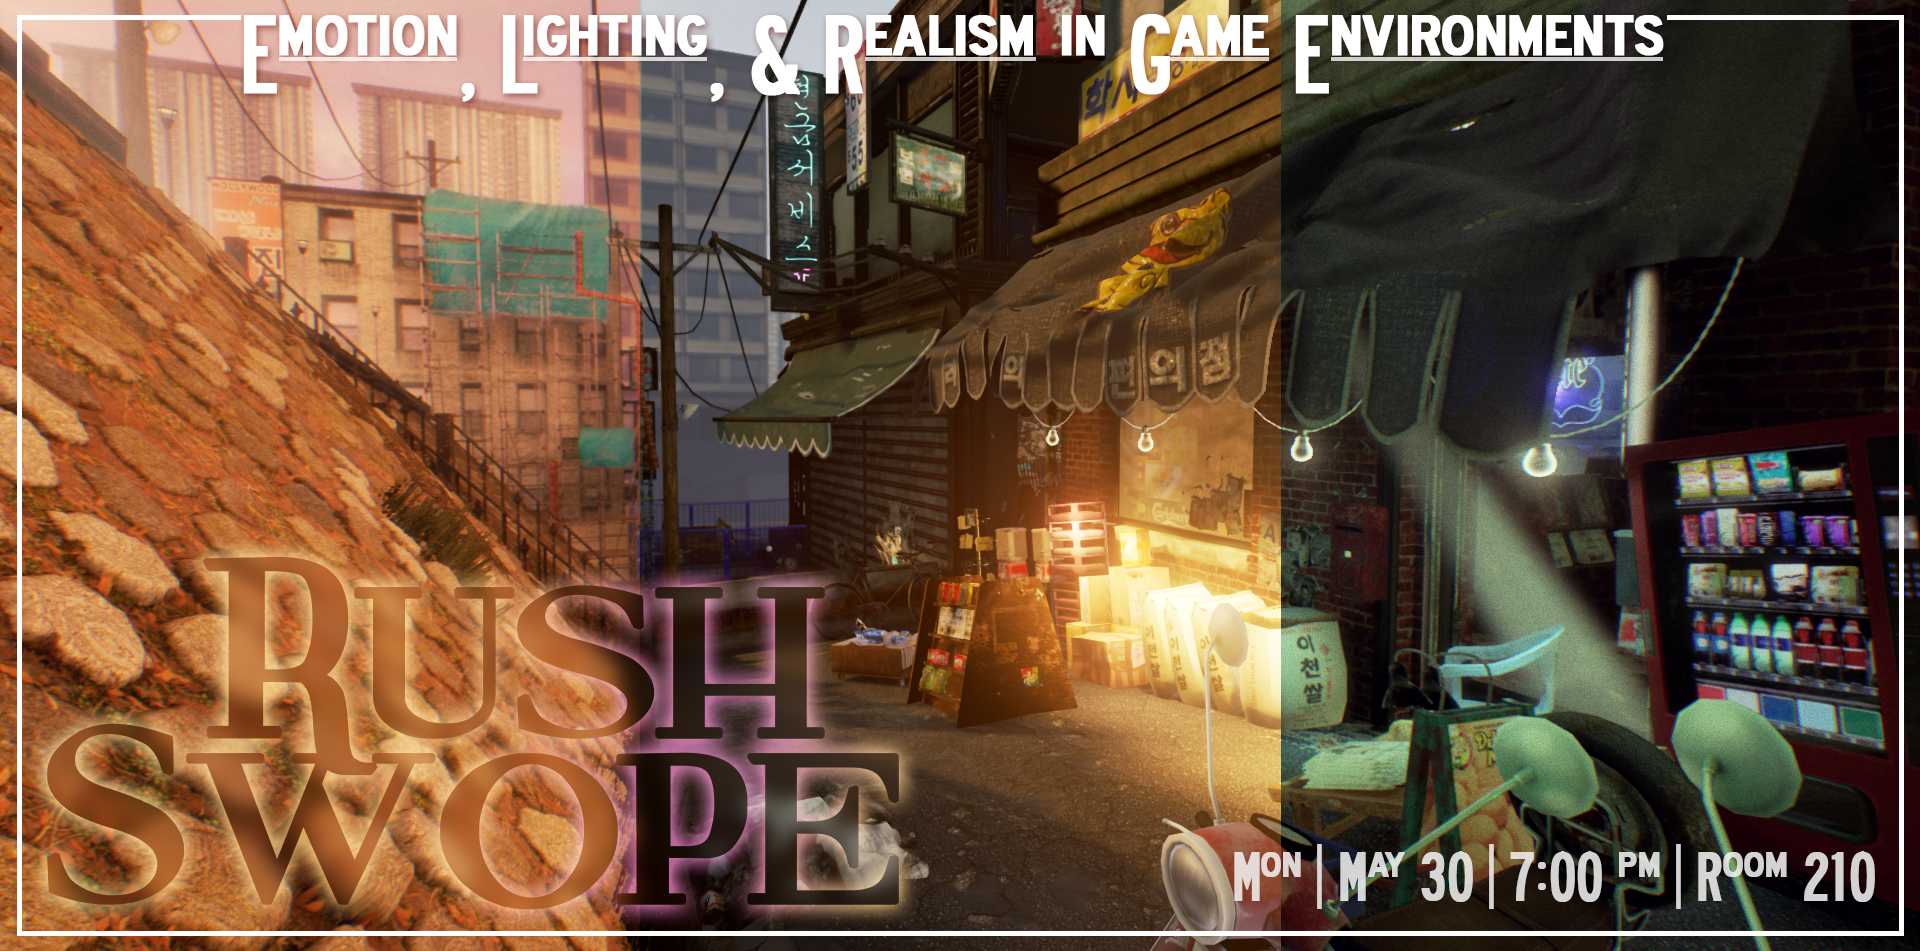 Emotion, Lighting, & Realism in Game Environments